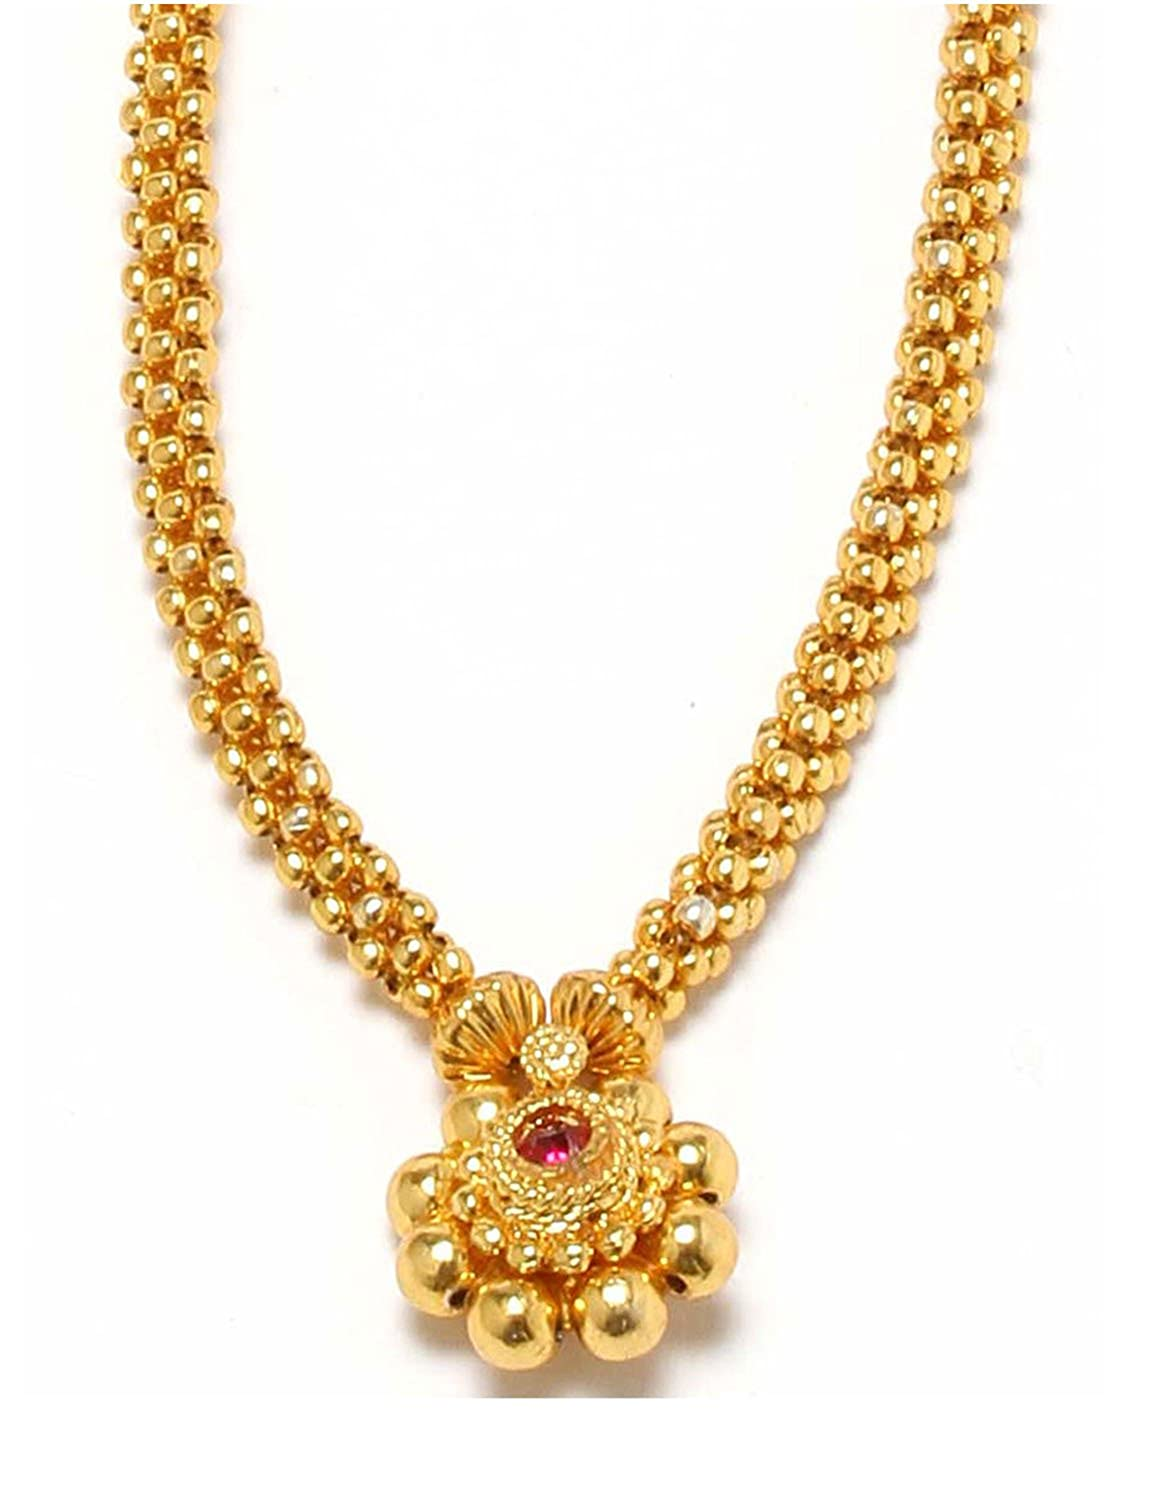 Womens Trendz Gold Plated Chain Necklace For Women: Amazon.in ...